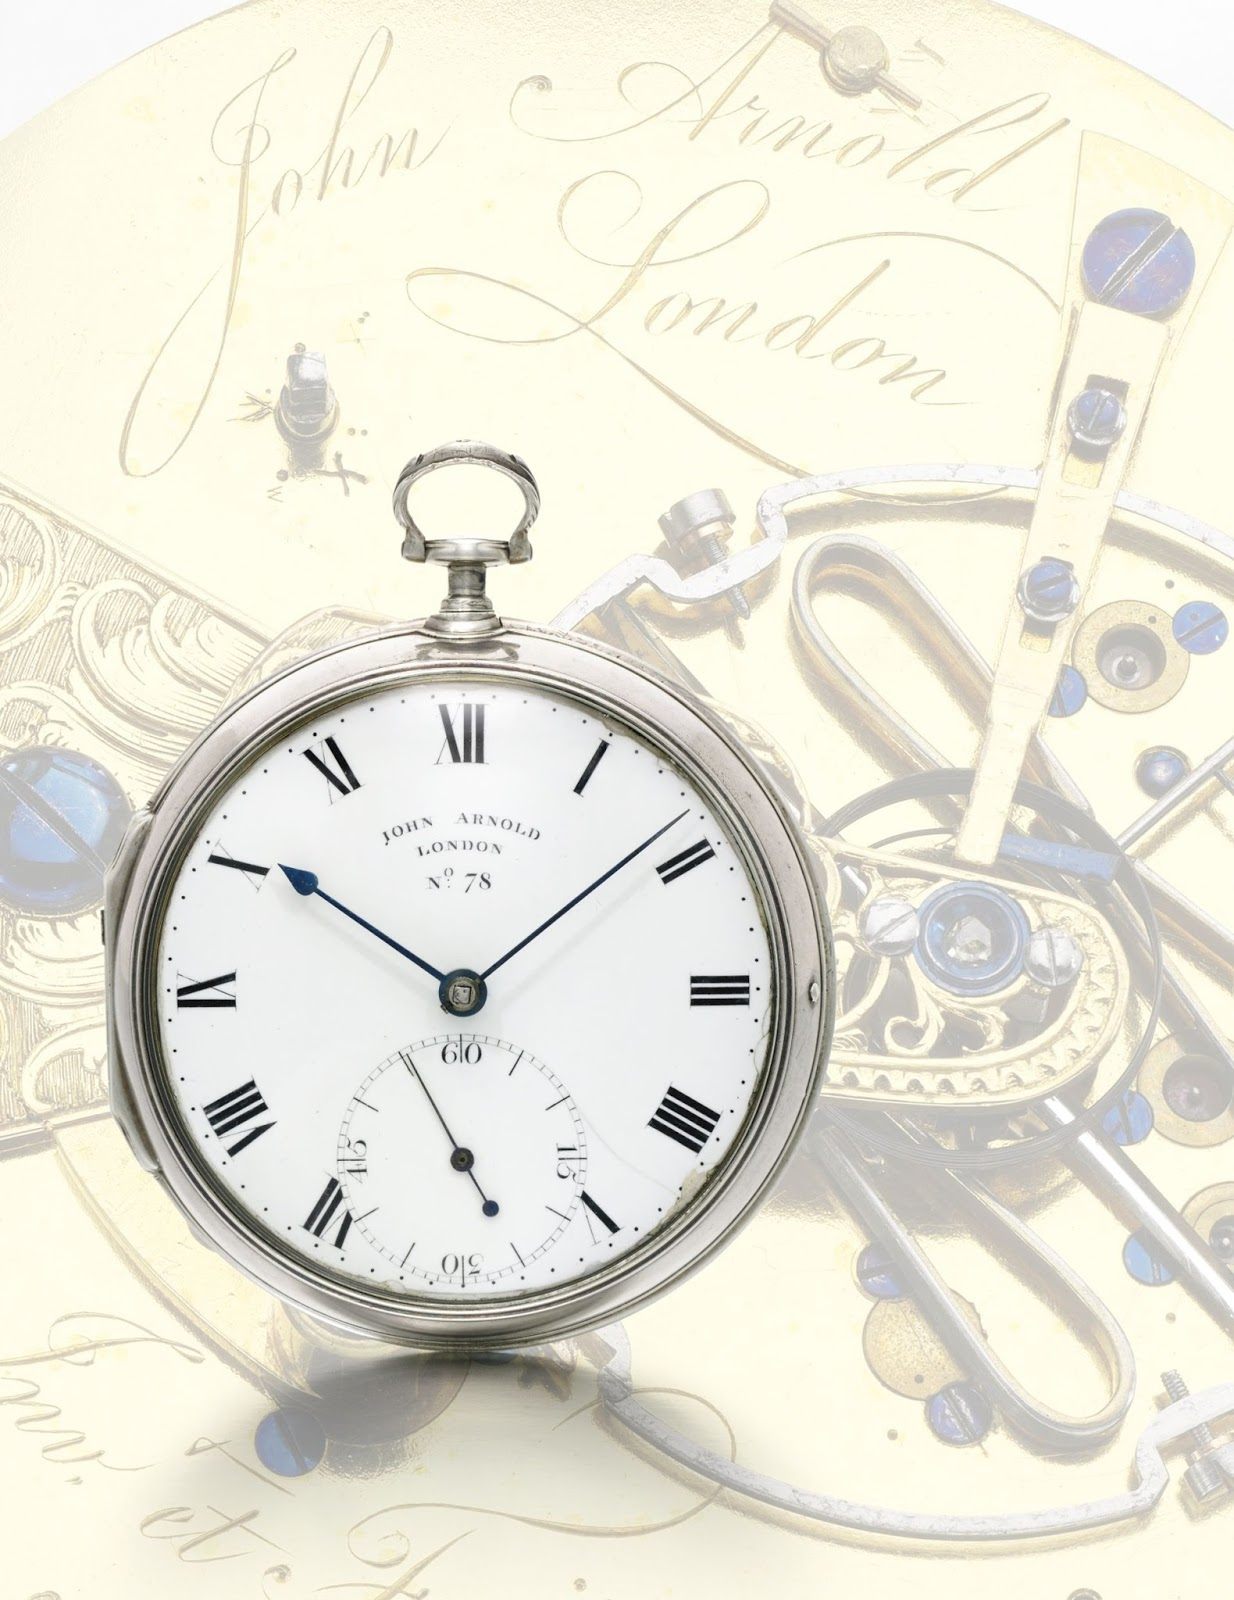 Lot-38-a-John-Arnold-watch-circa-1781-sold-for-722-318-at-the-Sotheby-s-auction-Sotheby-s-1.jpg